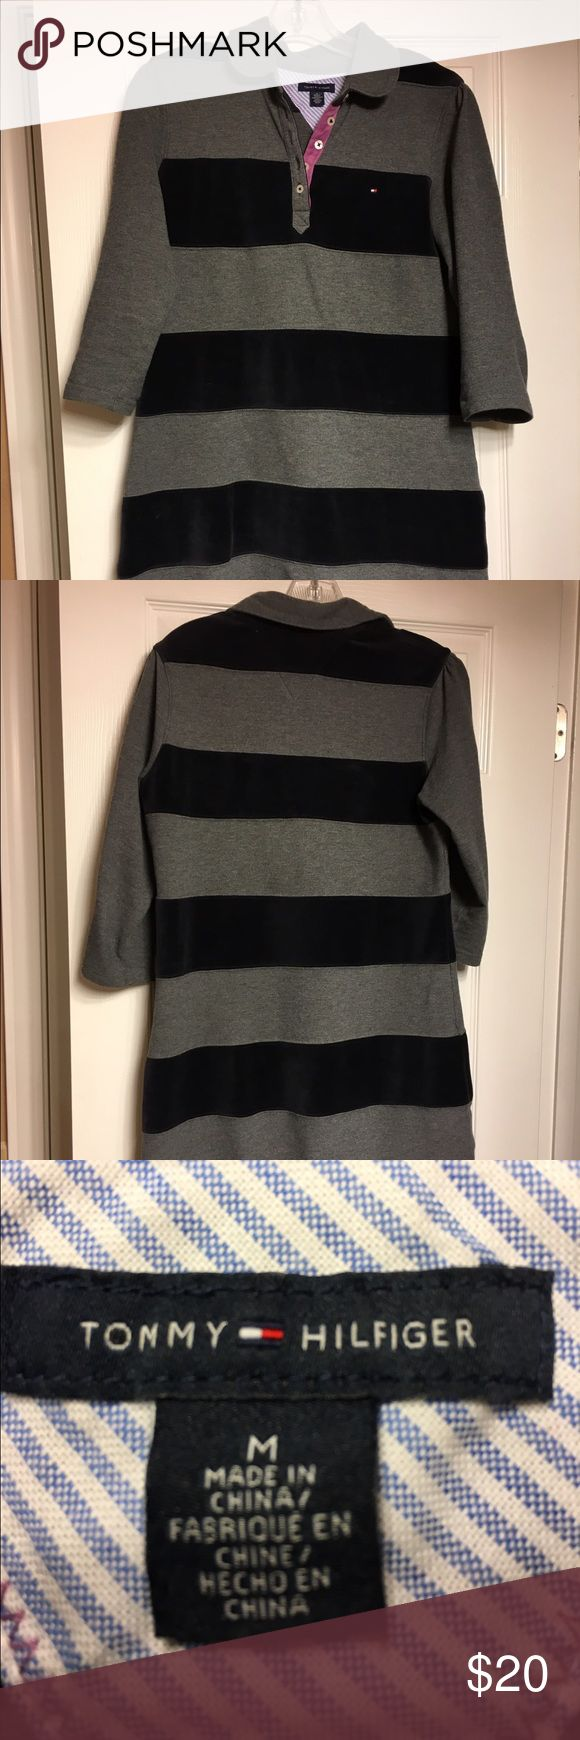 Tommy Hilfiger dress Navy velvet and grey cotton striped dress. Very comfy. Looks great with boots. Tommy Hilfiger Dresses Midi